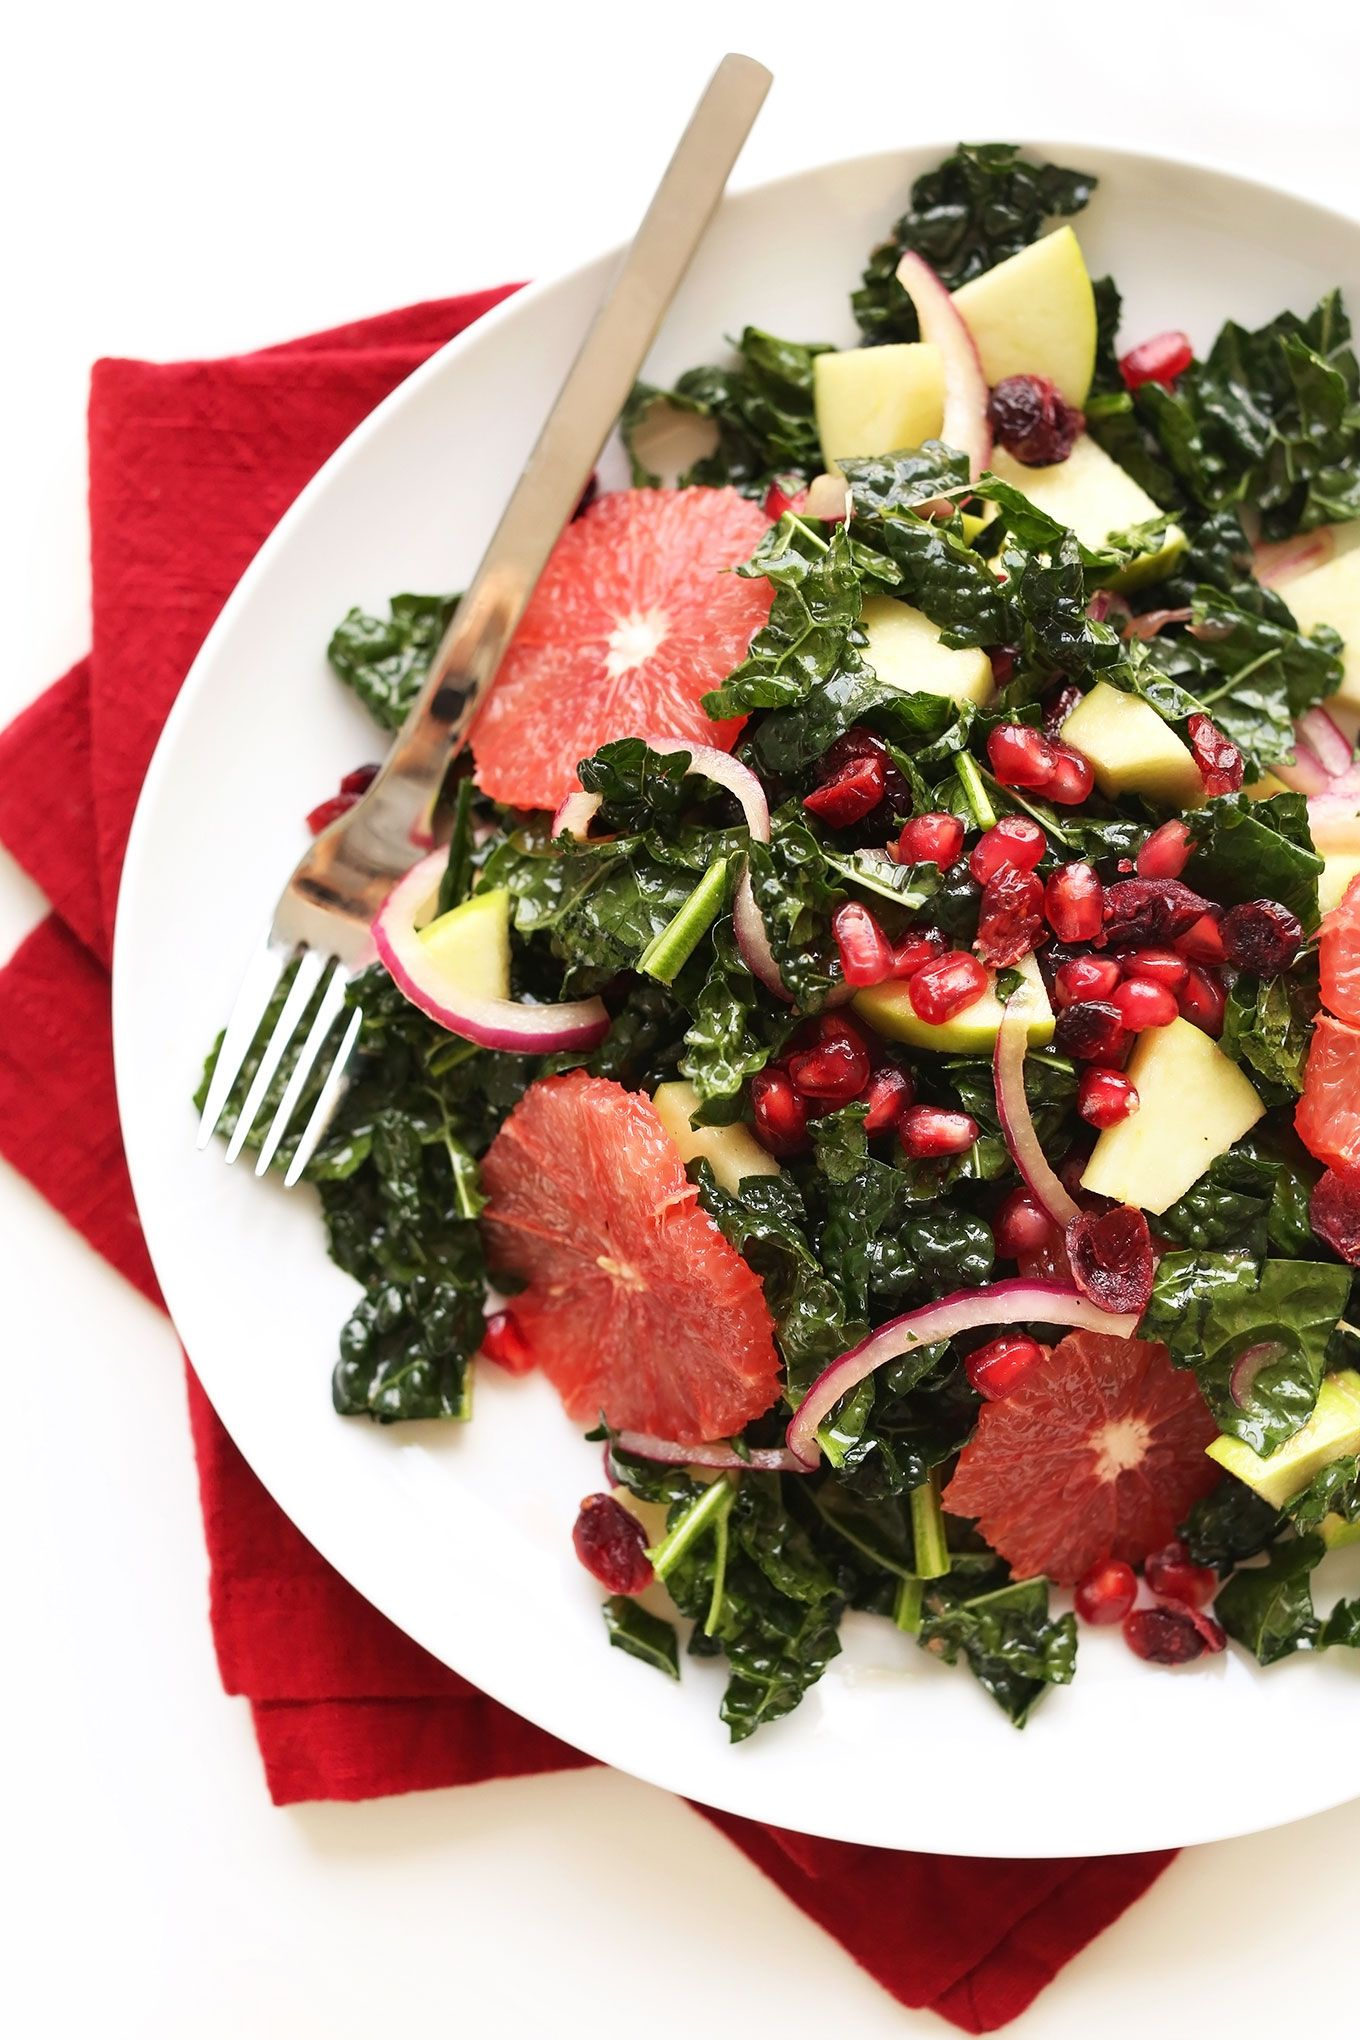 A simple 30-minute kale salad with sweet and tart fruits, pickled red onions, and a simple red wine vinaigrette! Crunchy, filling, fresh, and the perfect healthy light lunch or side salad.